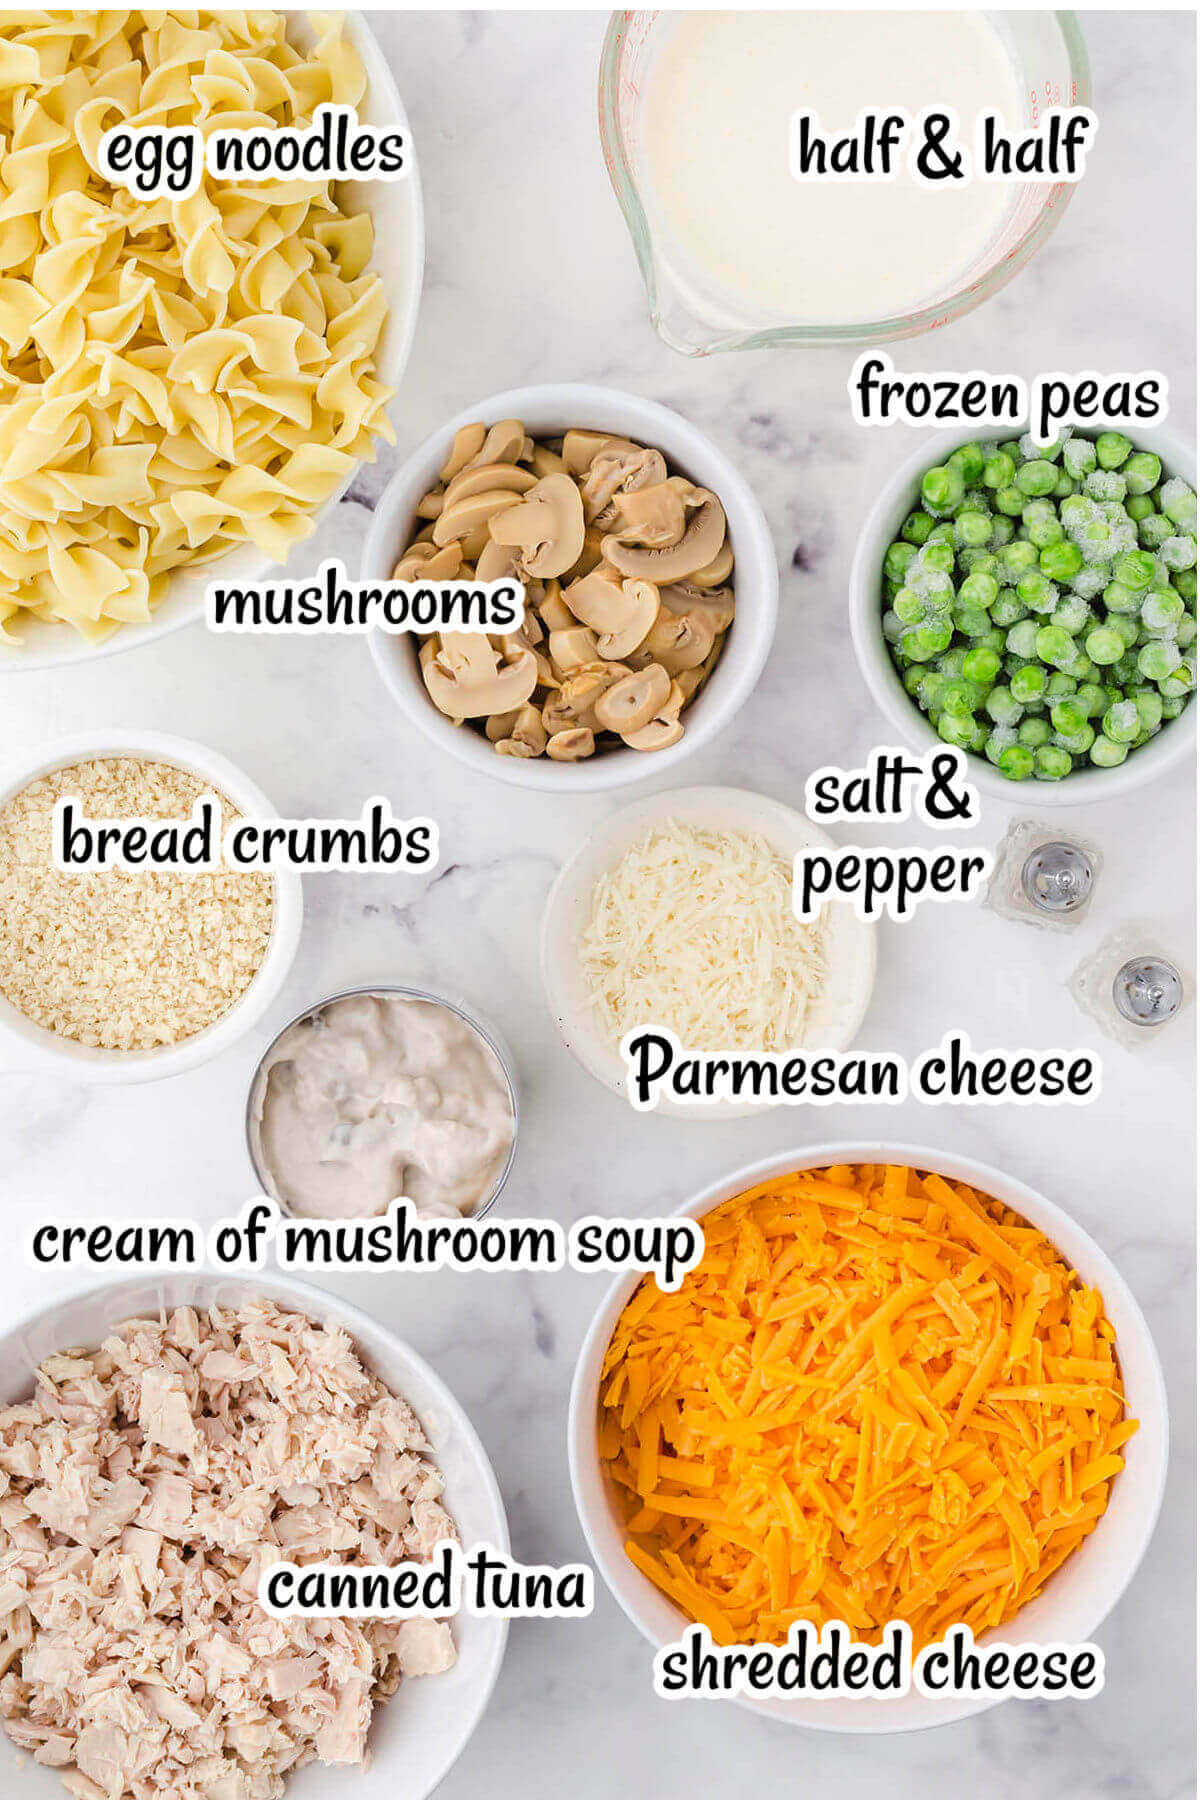 Photo of ingredients needed to make this recipe, with print overlay.